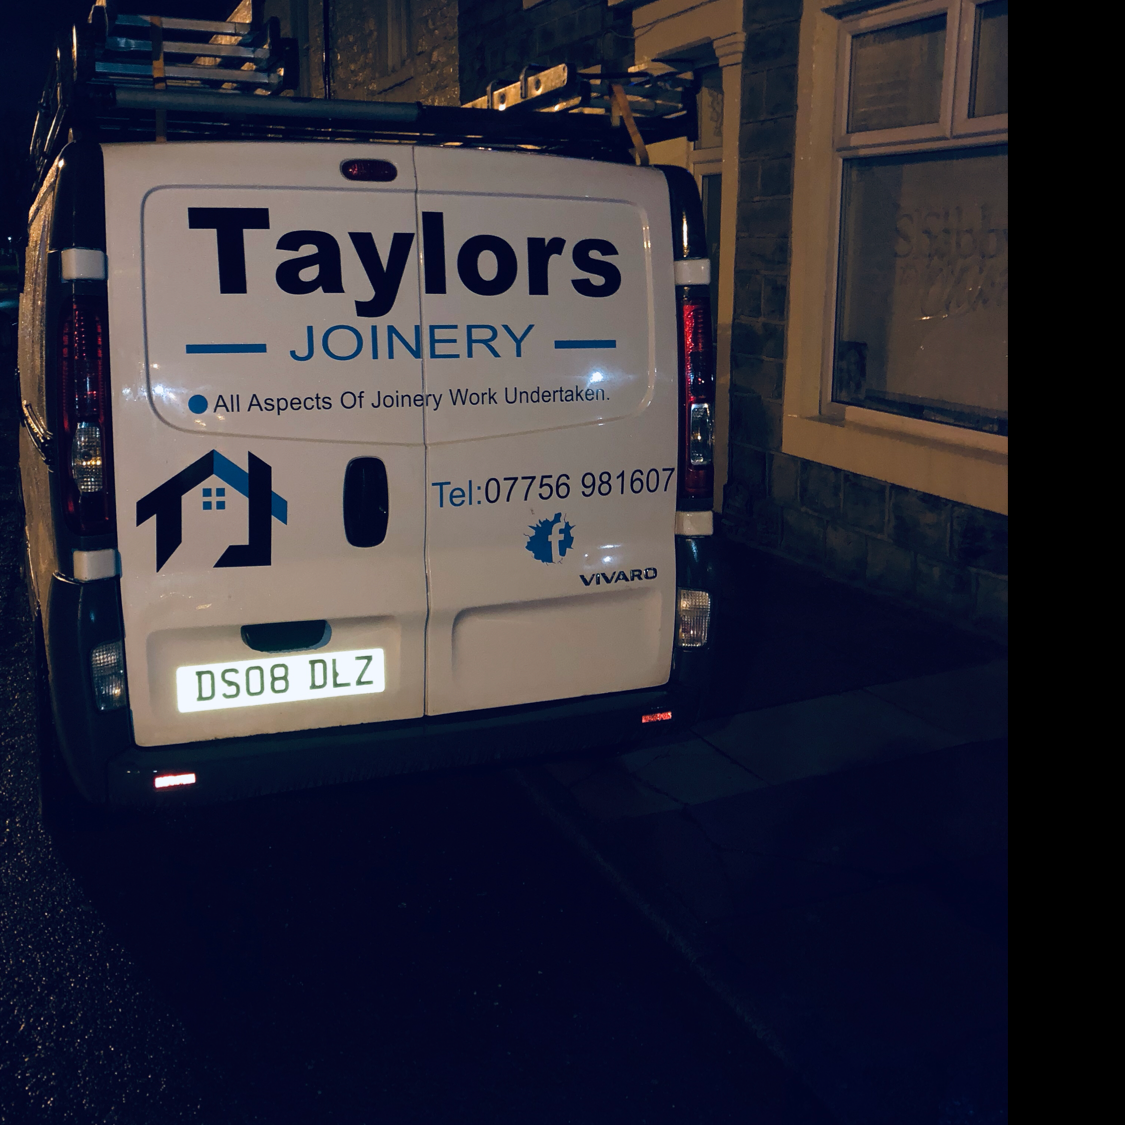 Taylors Joinery